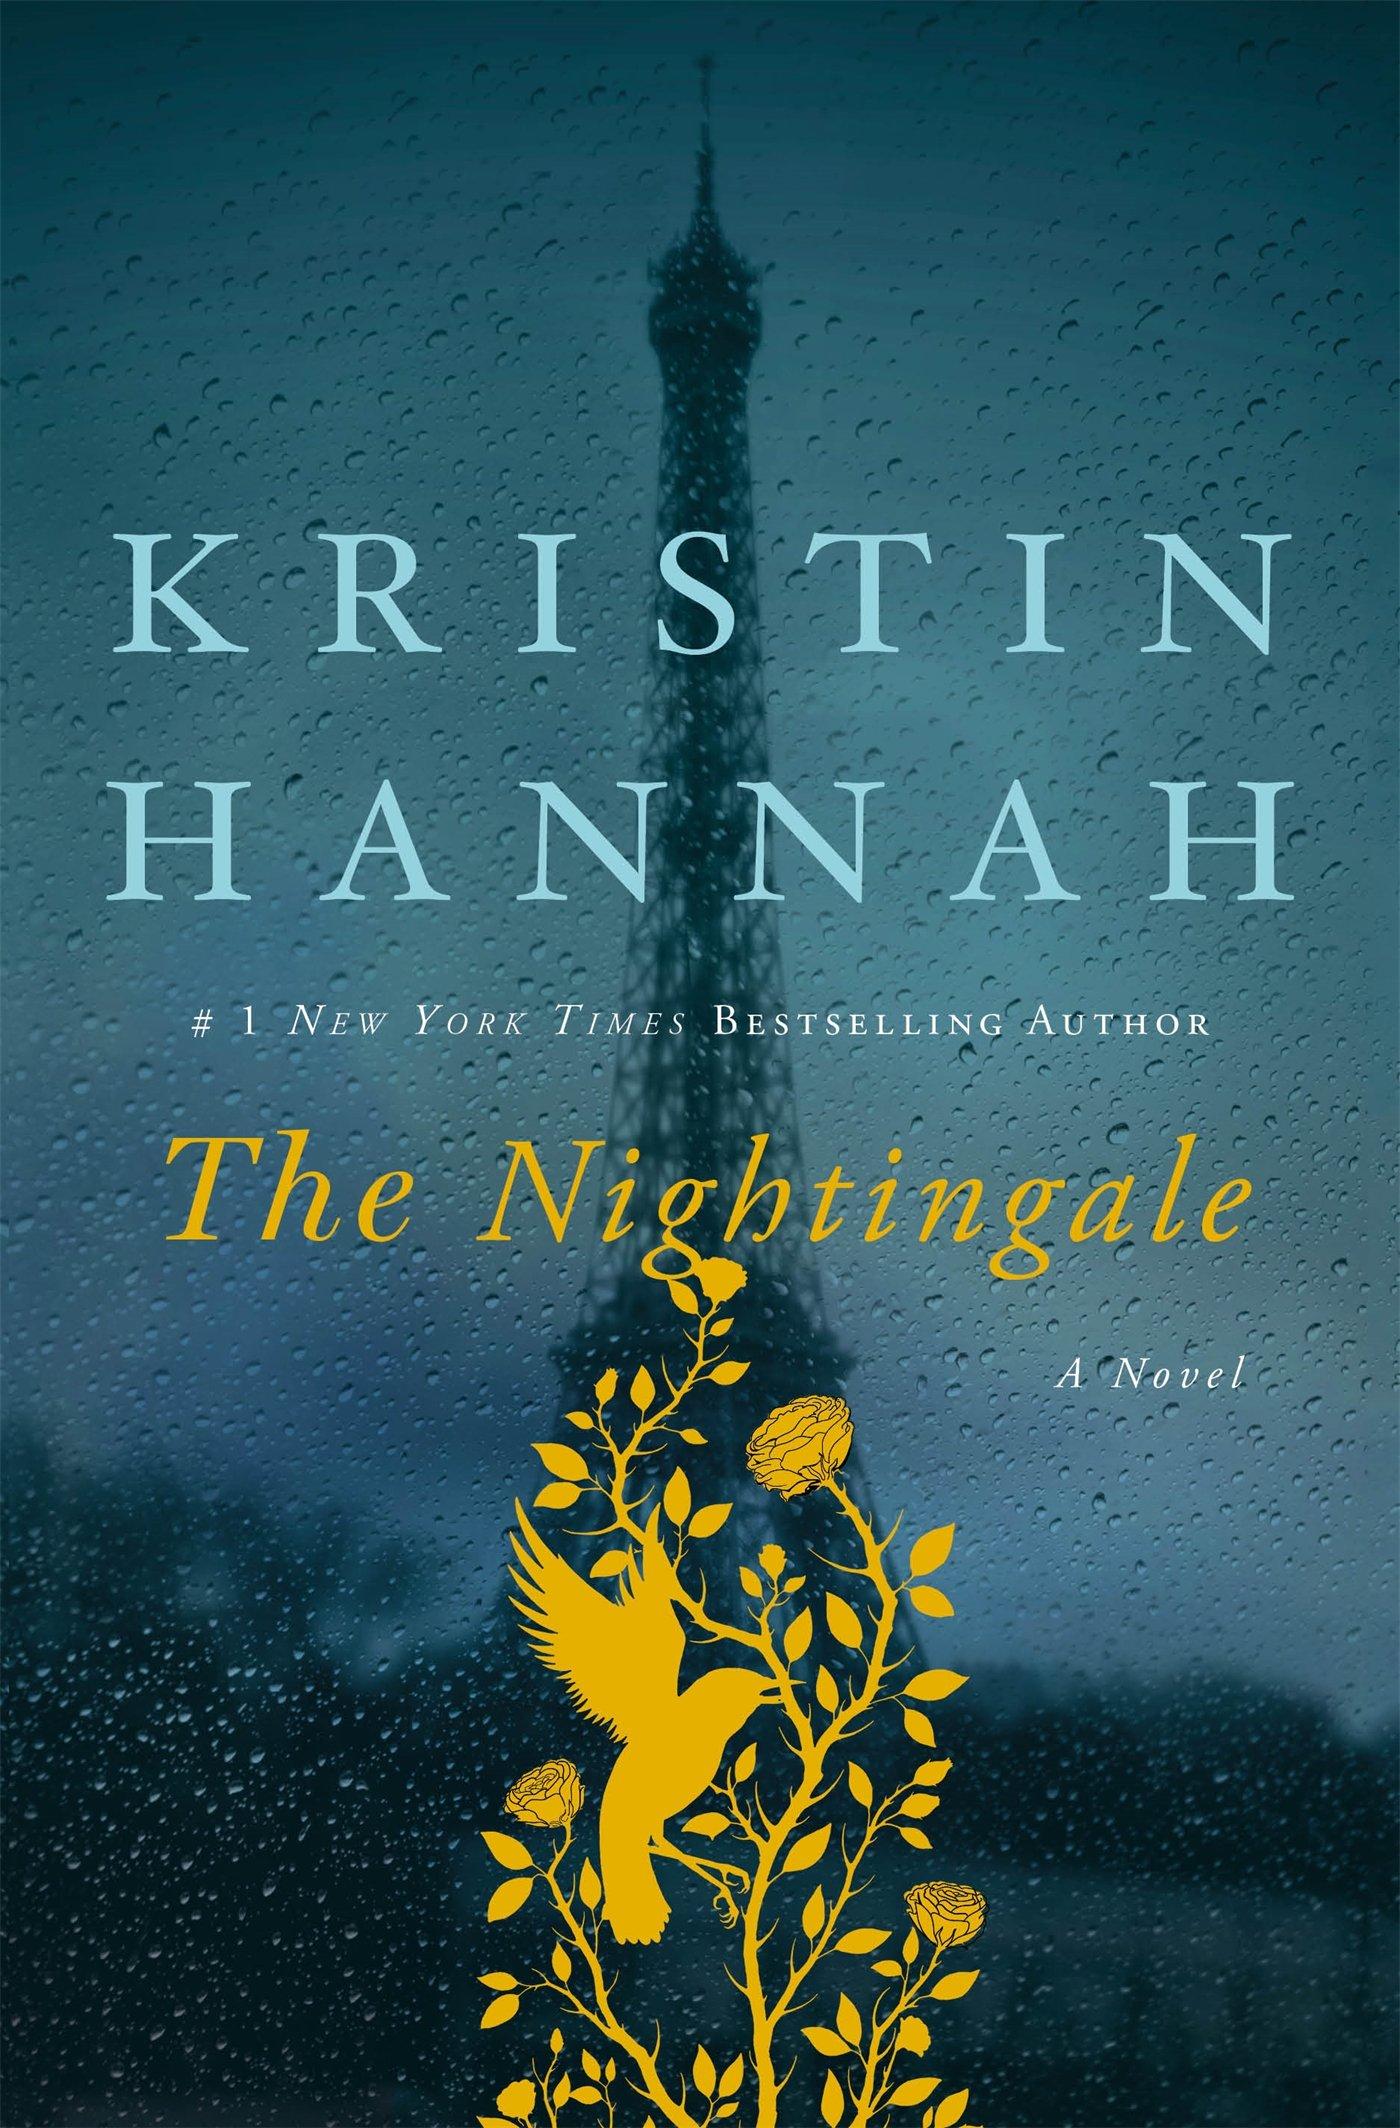 give a copy of the popular book by Kristin Hannah The Nightingale